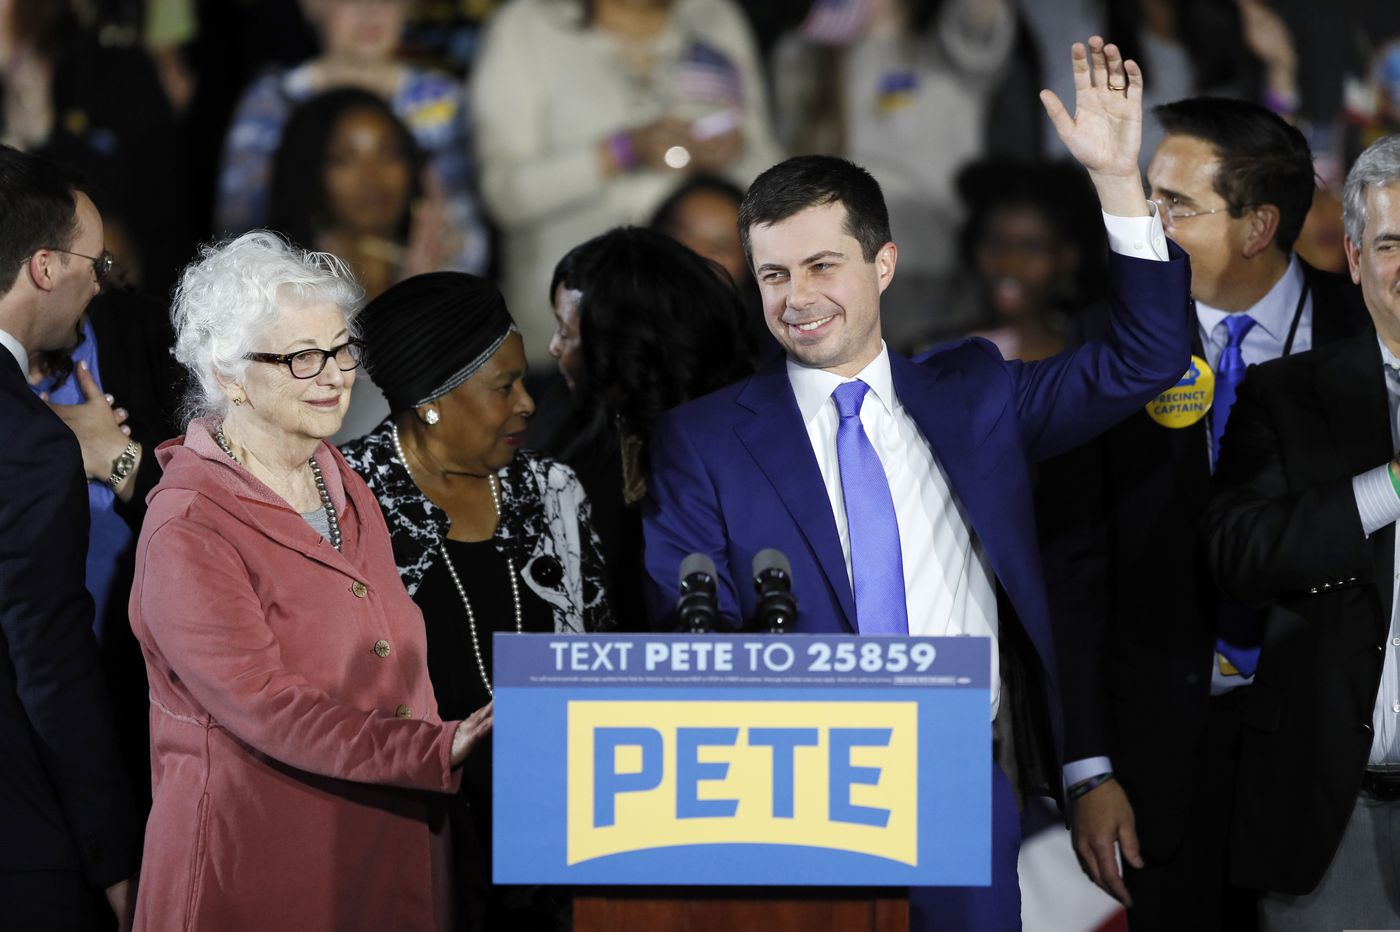 Buttigieg, Sanders lead as Iowa releases partial results